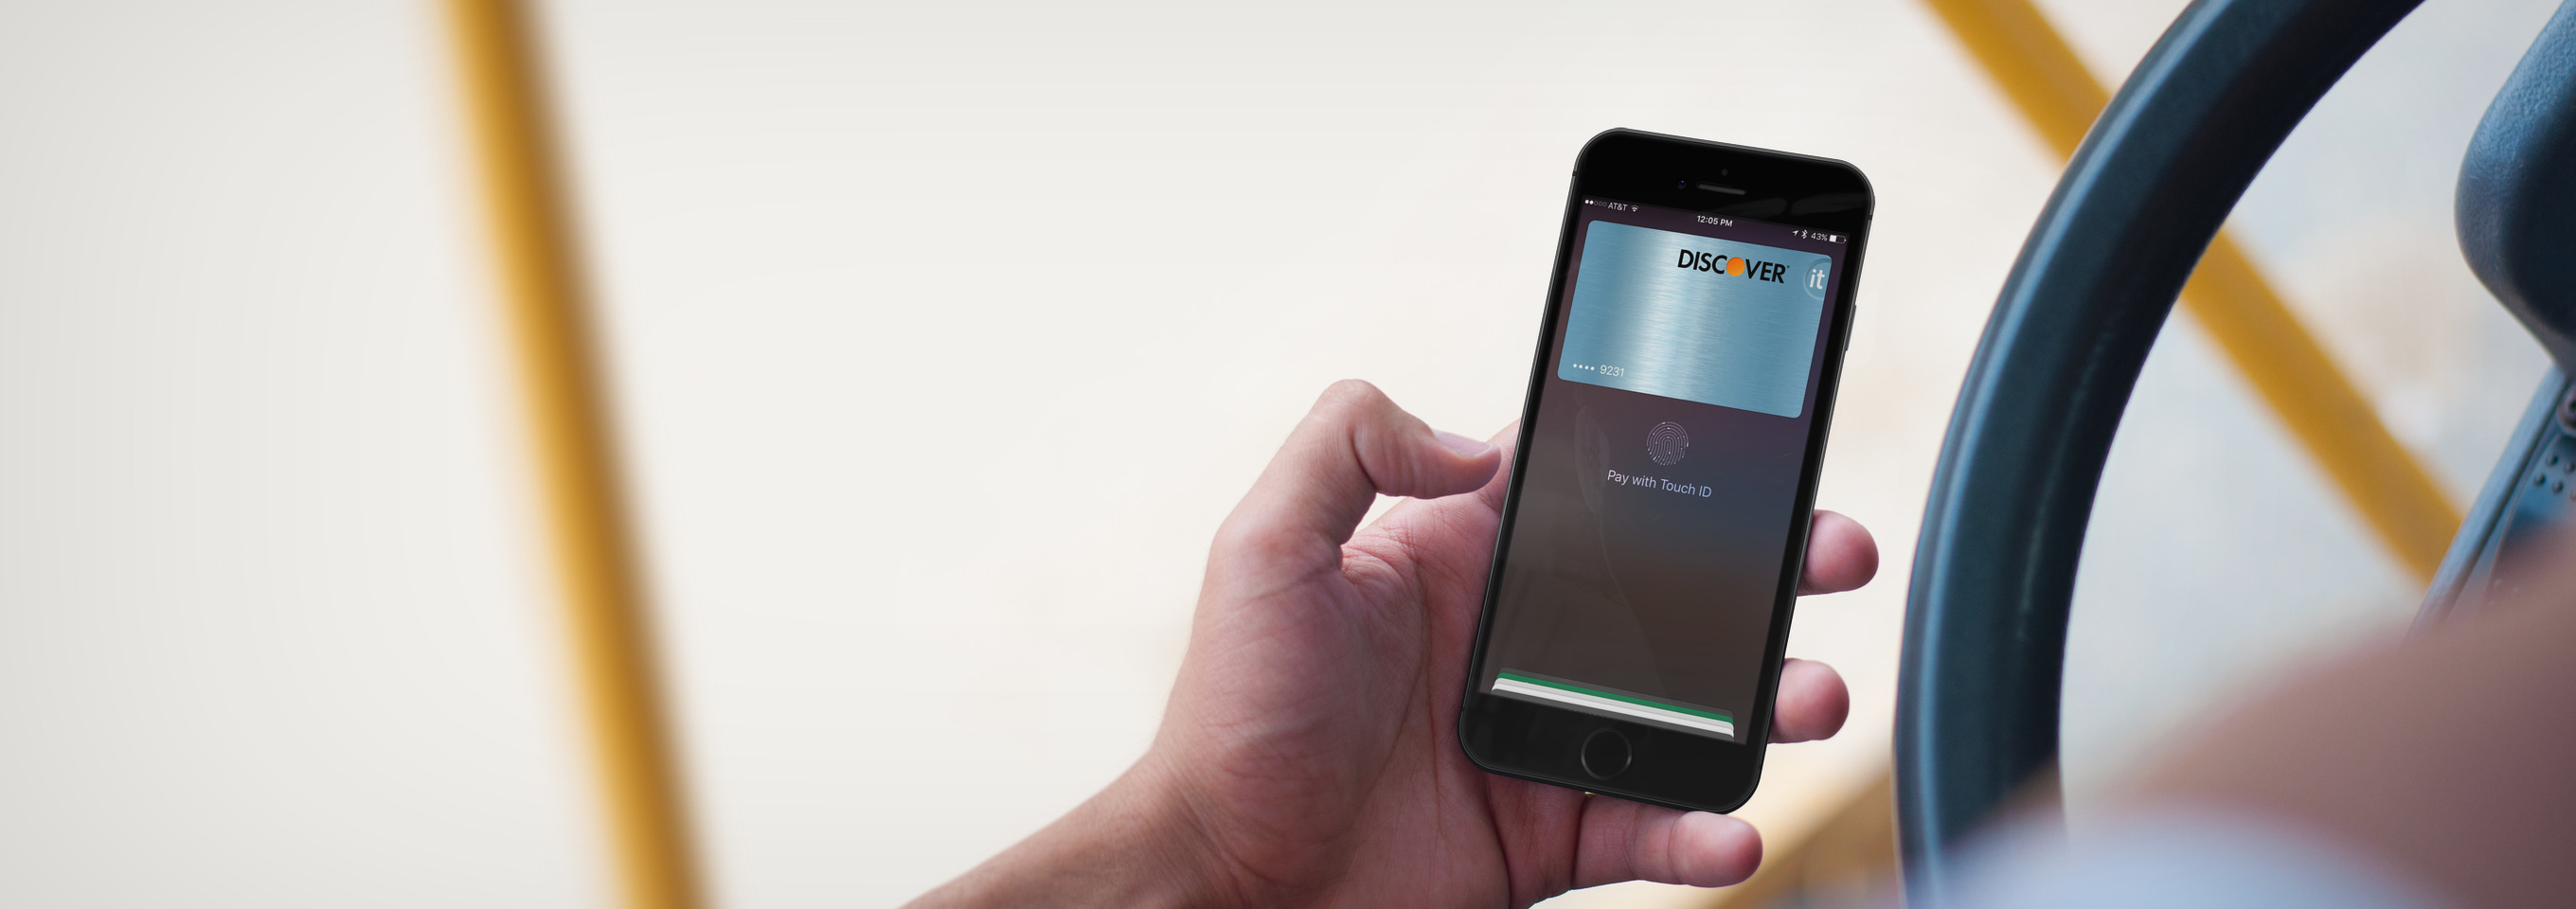 Apple Pay now lets you use the Discover card in your Wallet